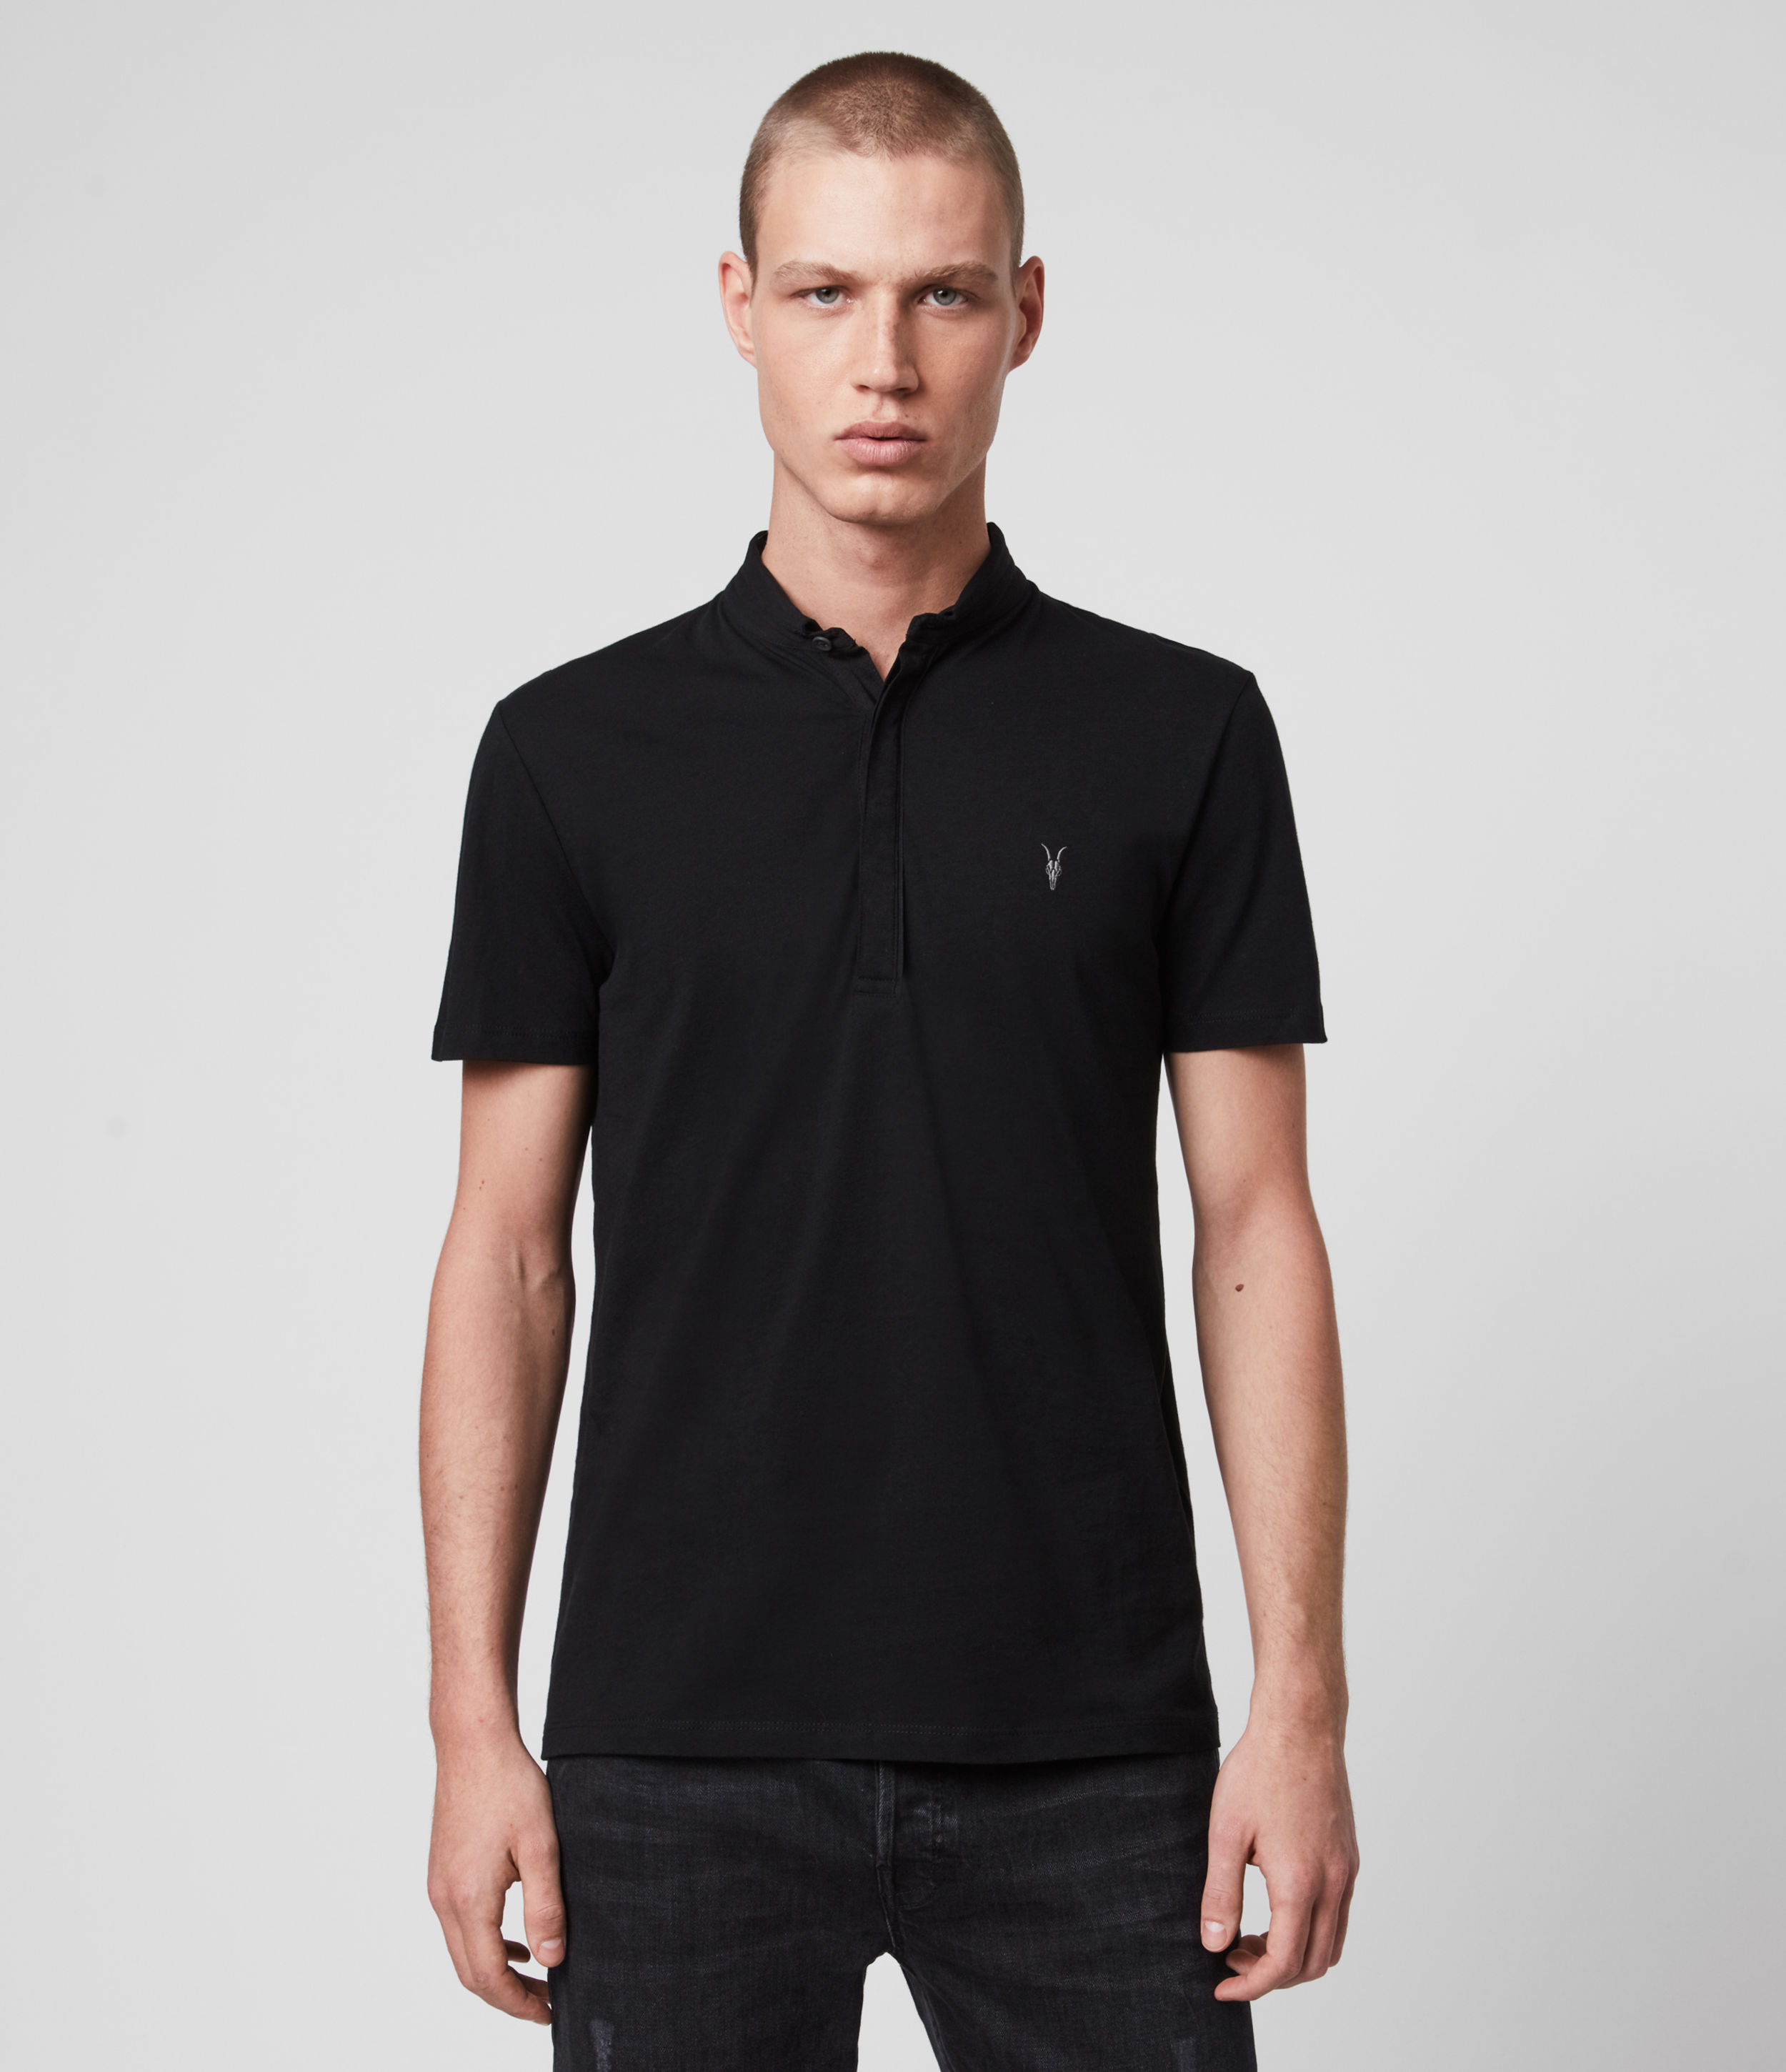 AllSaints Men's Cotton Lightweight Grail Short Sleeve Polo Shirt, Black, Size: S